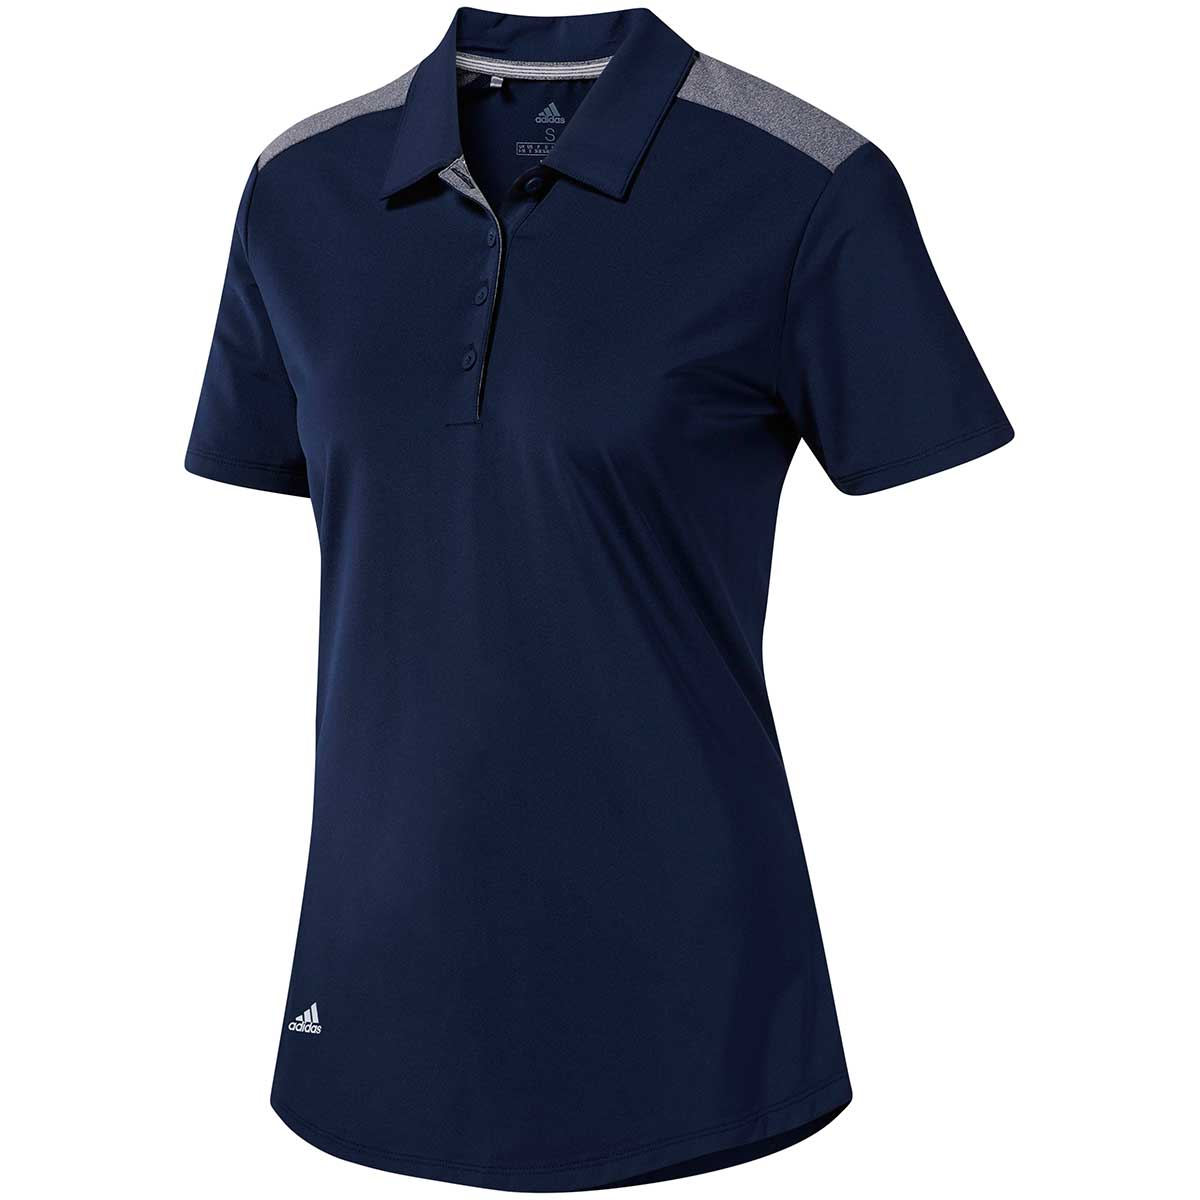 Adidas Women's Ultimate365 Polo Shirt - Night Indigo